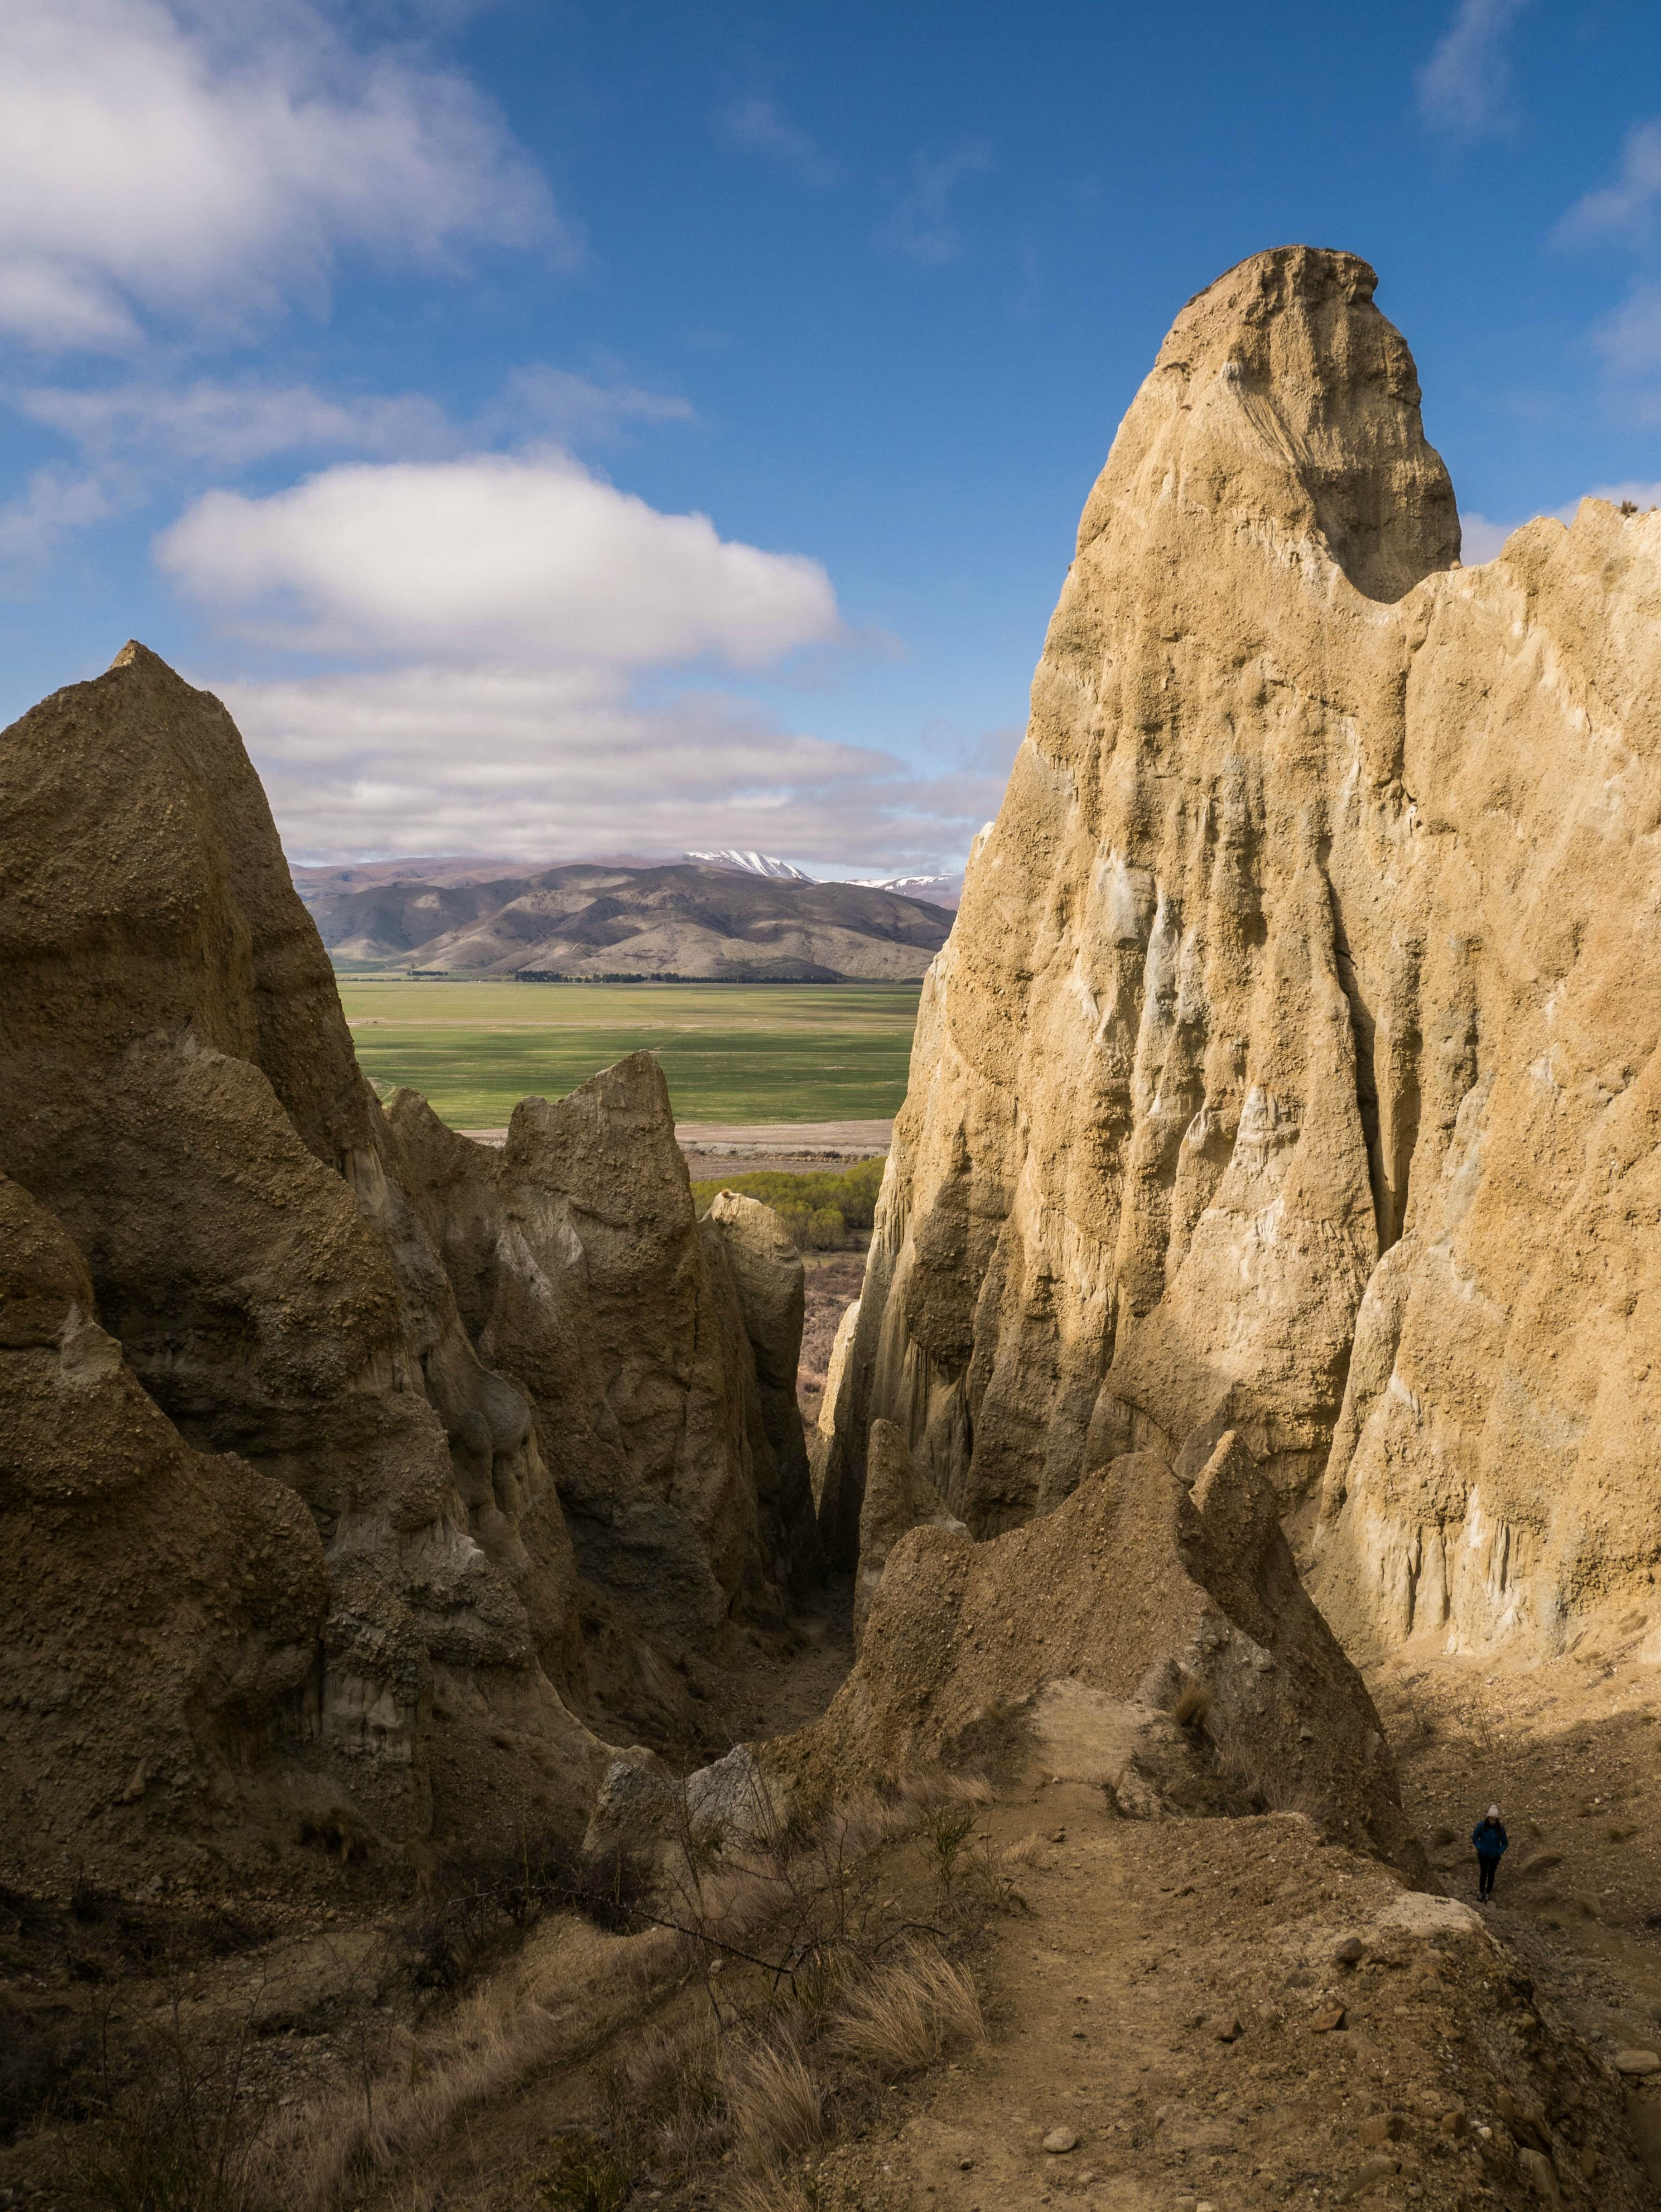 The Gorgeous and Absolutely Surreal Clay Cliffs That We Stumbled Across in Omarama New Zealand wallpaper